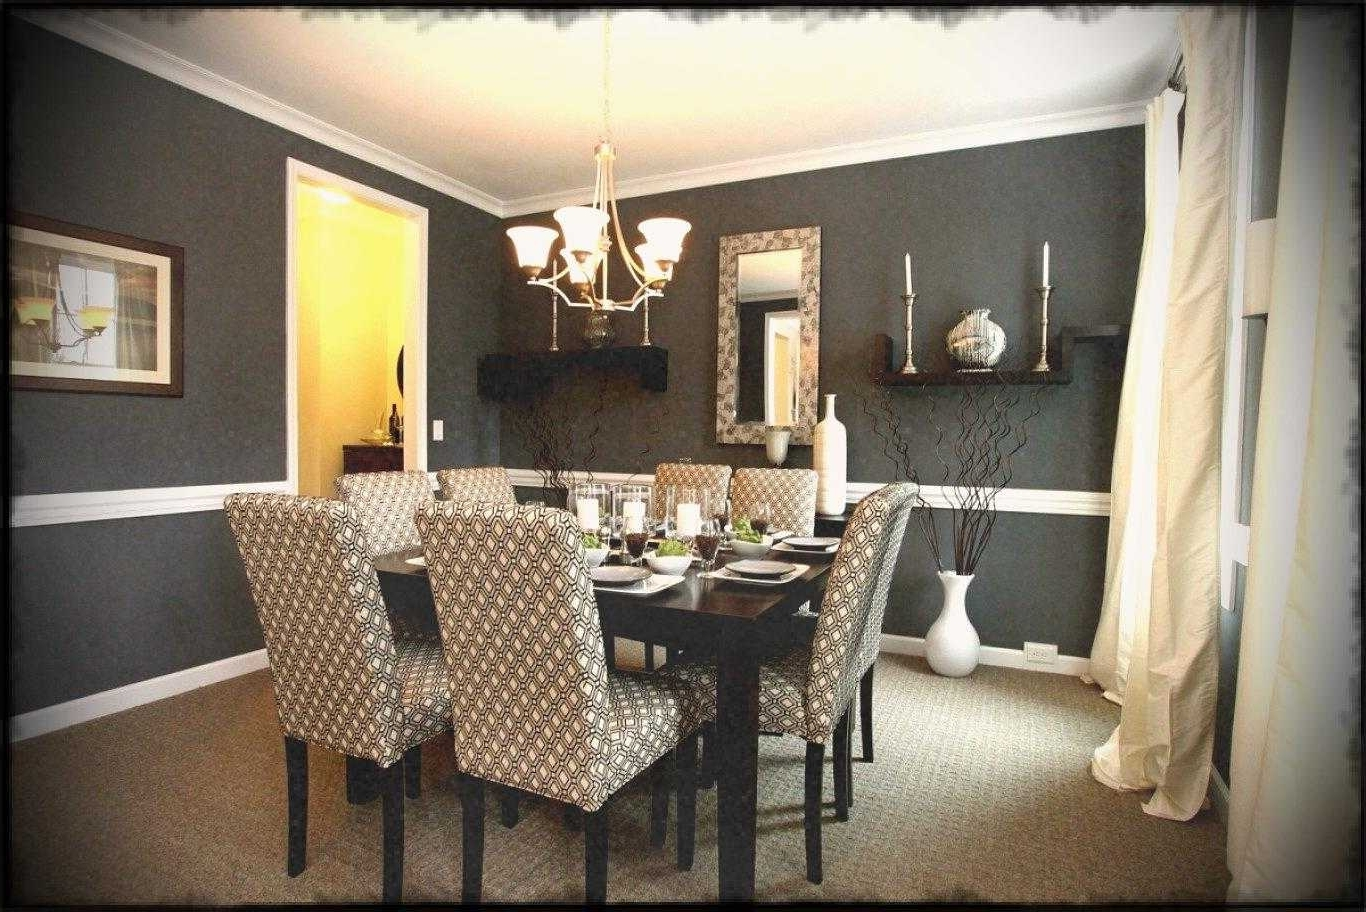 Trendy Chicago Wall Art Within Stunning Modern Wall Art For Dining Room Collection Also Islamic (View 14 of 15)